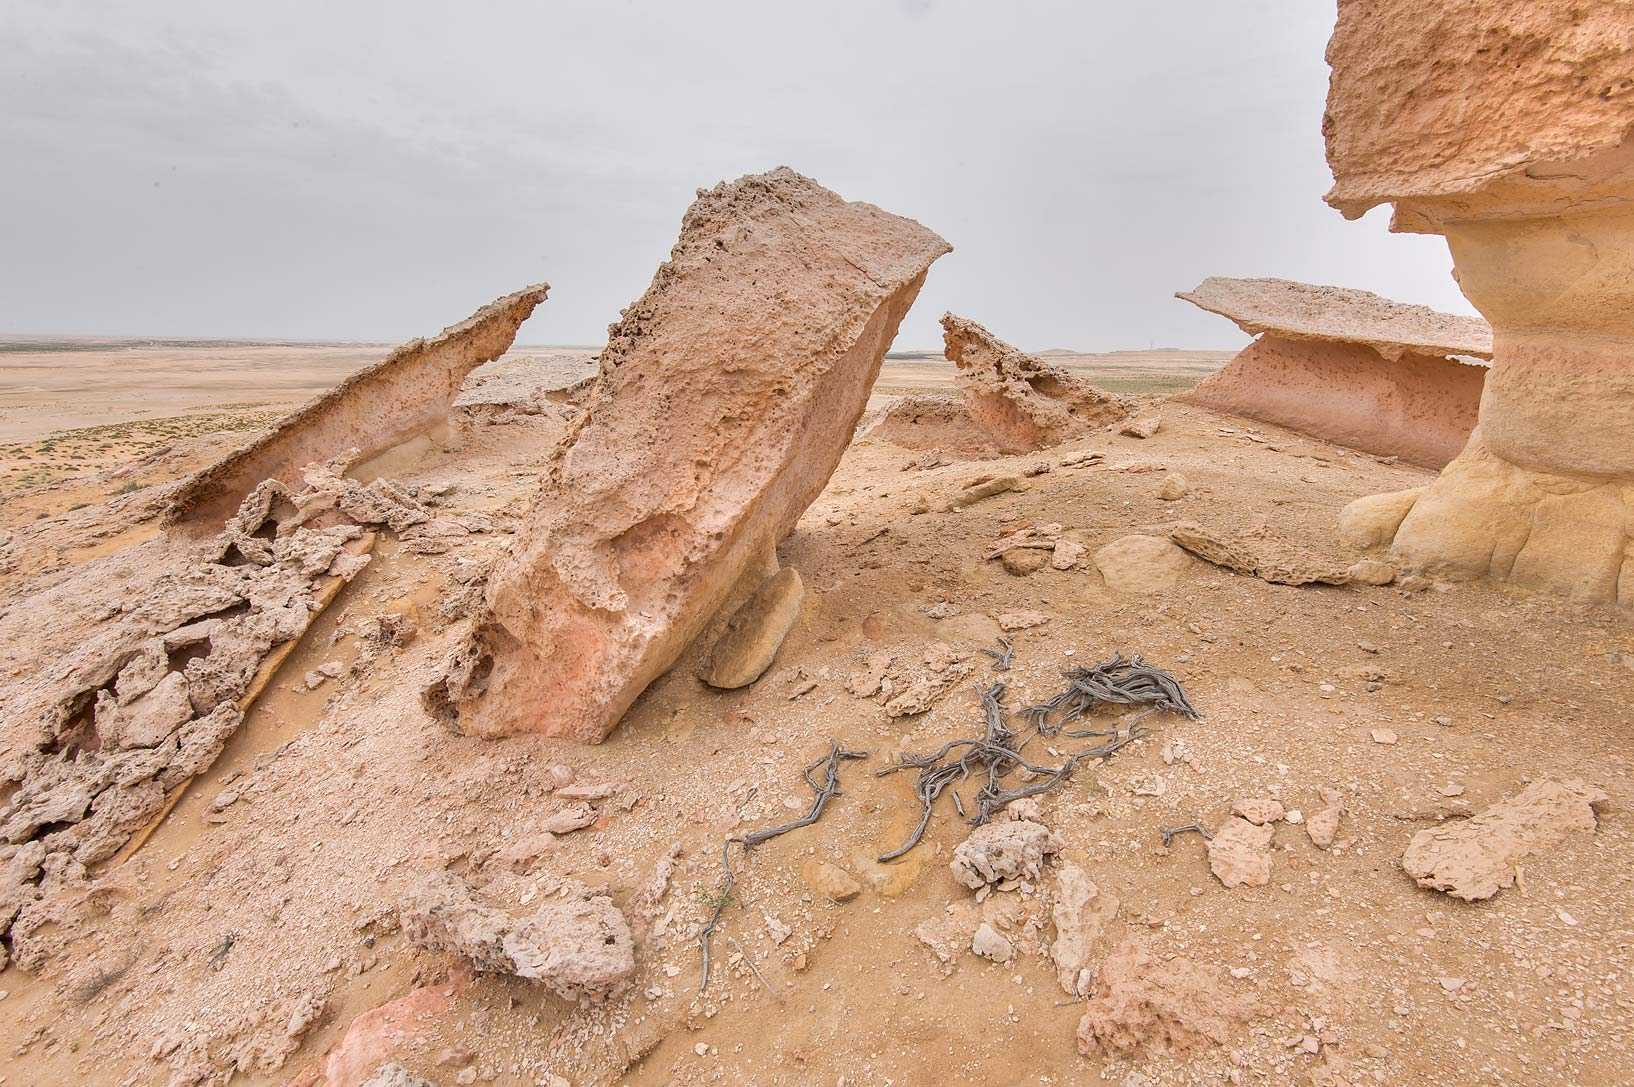 Dry wood near the edge of limestone cliffs in...Reserve near Abu Samra. Southern Qatar